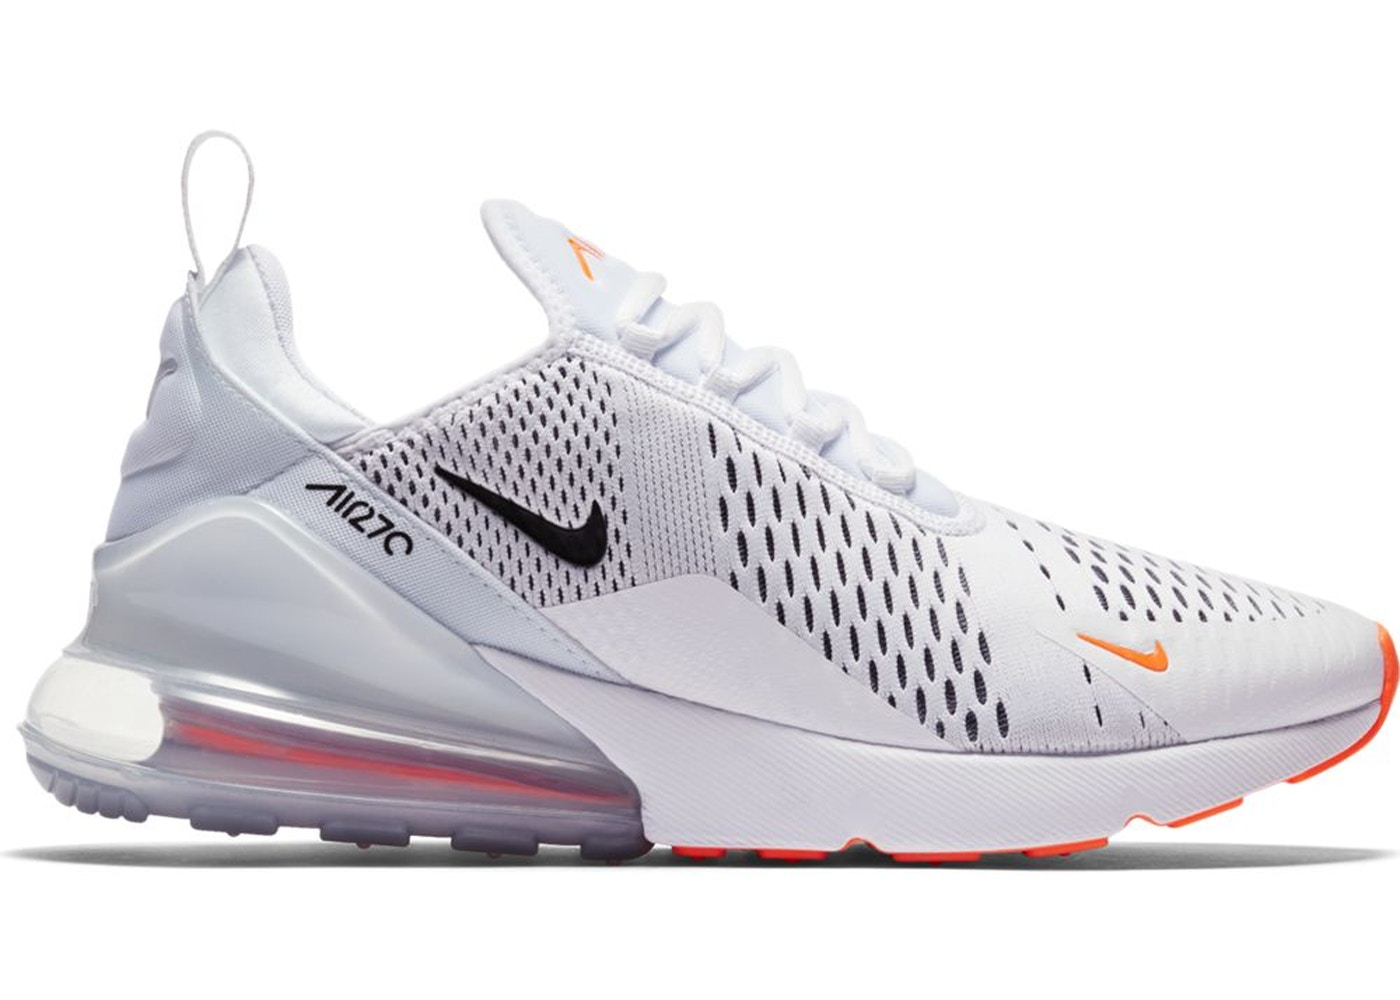 Nike Air Max 270 White Black Total Orange Ah8050 106